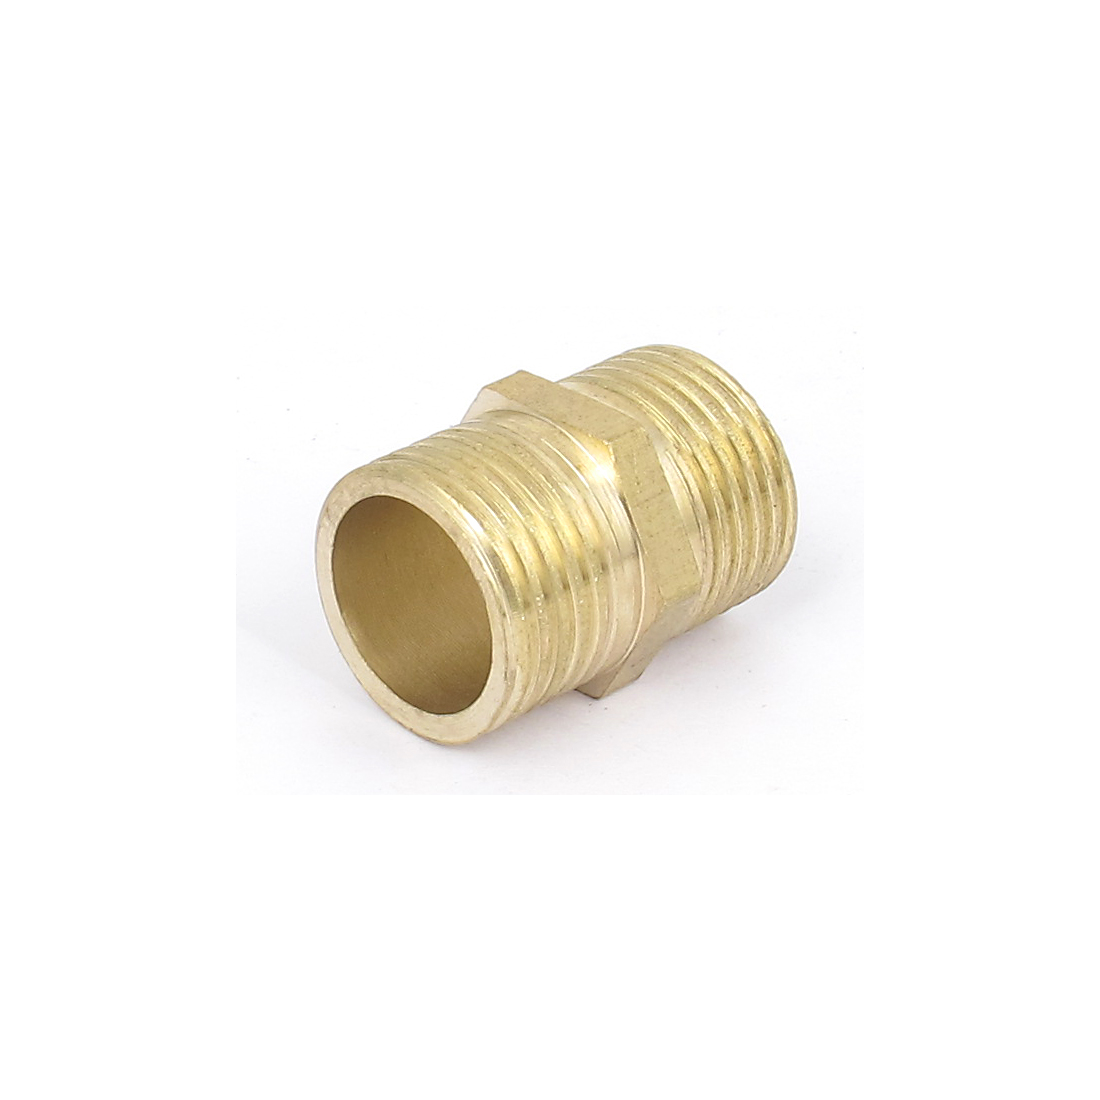 Gold Tone Brass 1/2BSP to 1/2BSP Male Thread Hex Nipple Connector Fitting 29mm Long